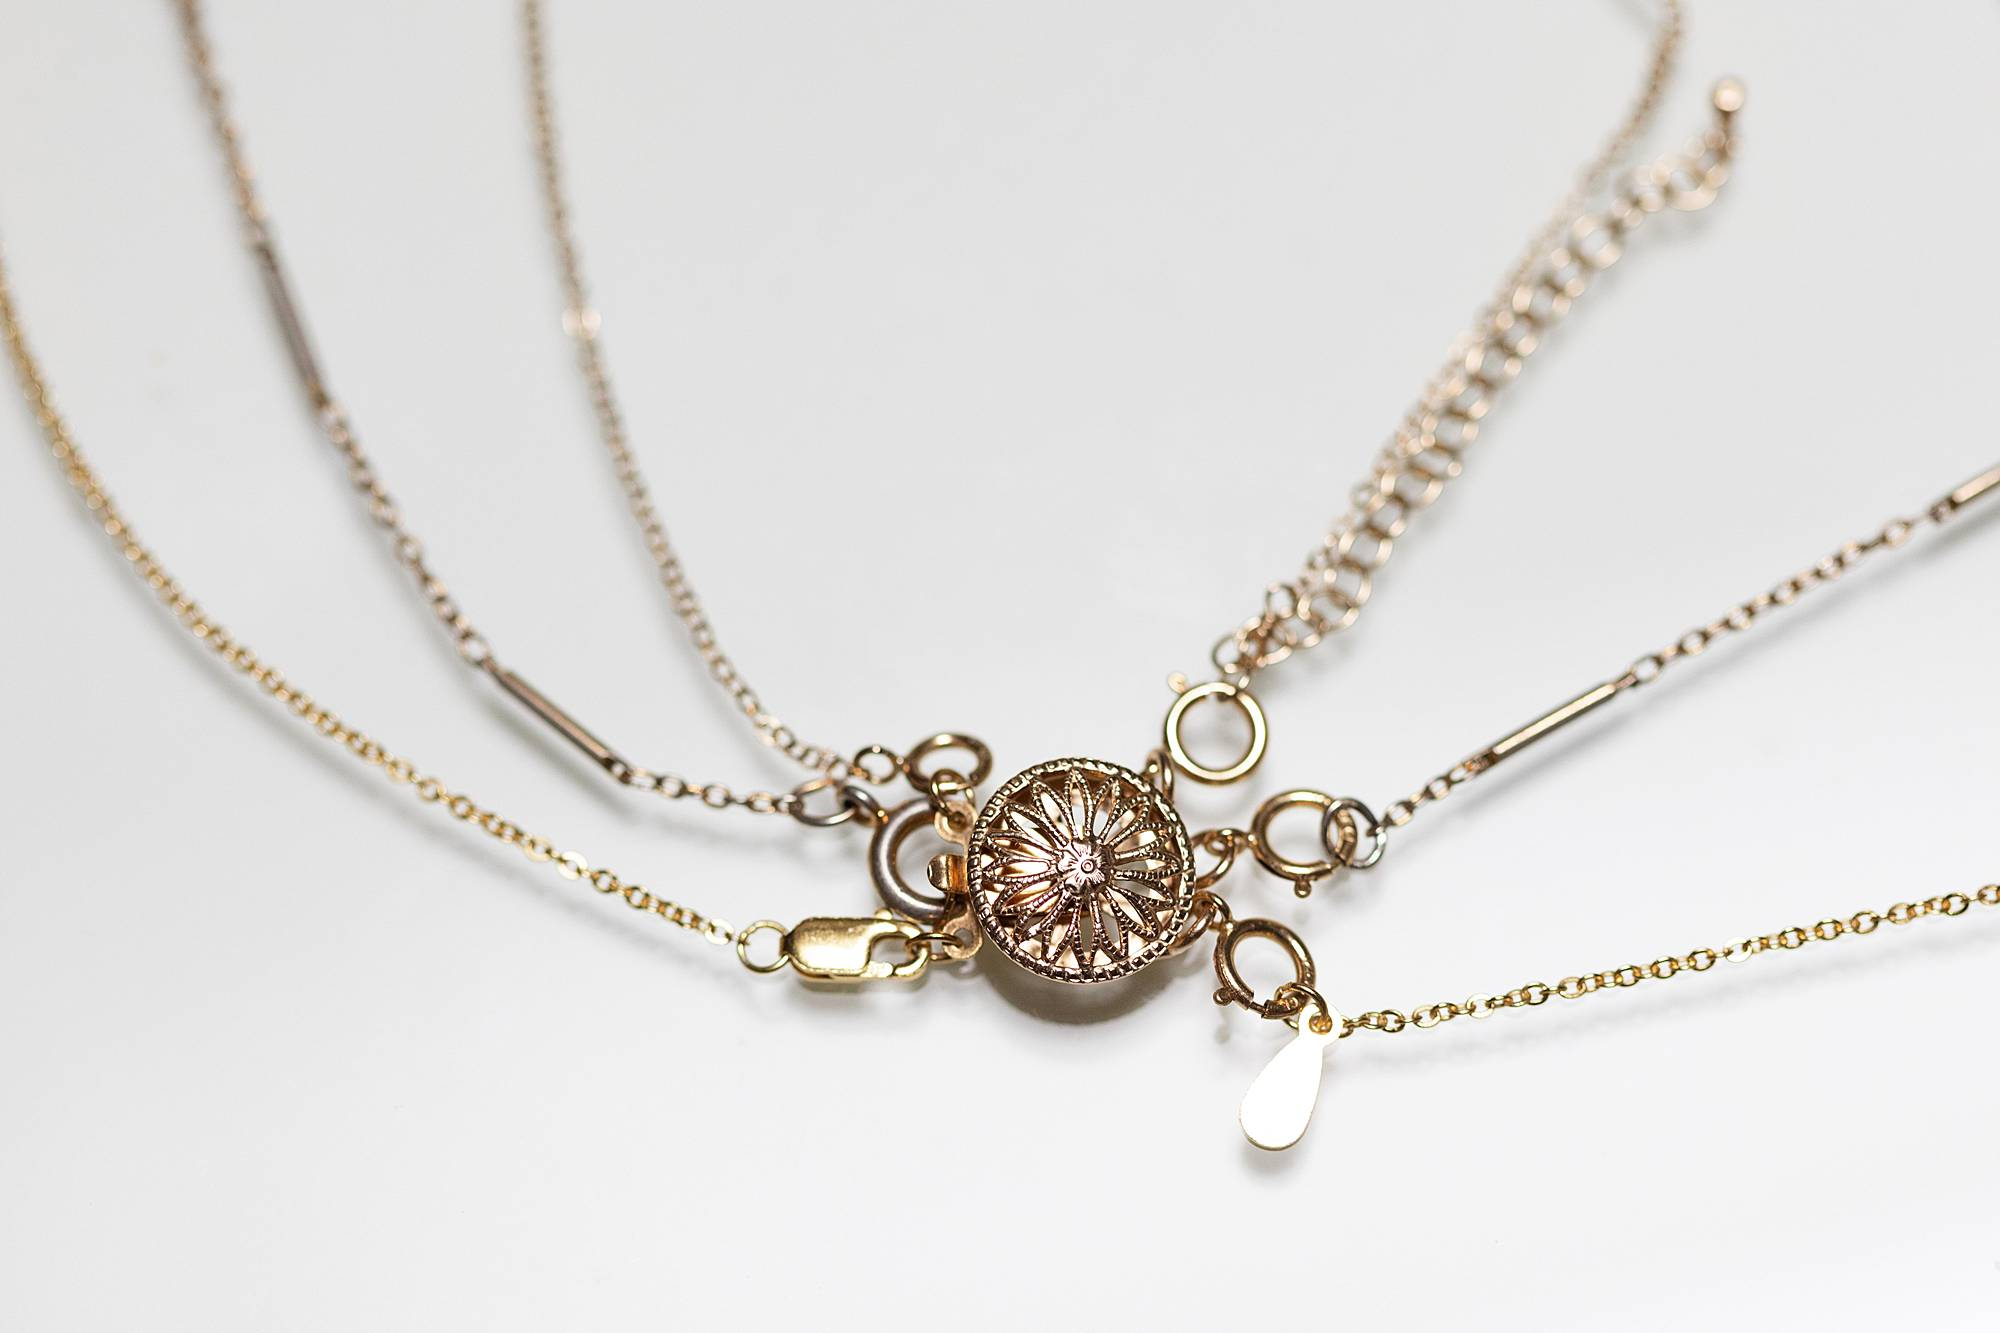 layering necklaces with a clasp